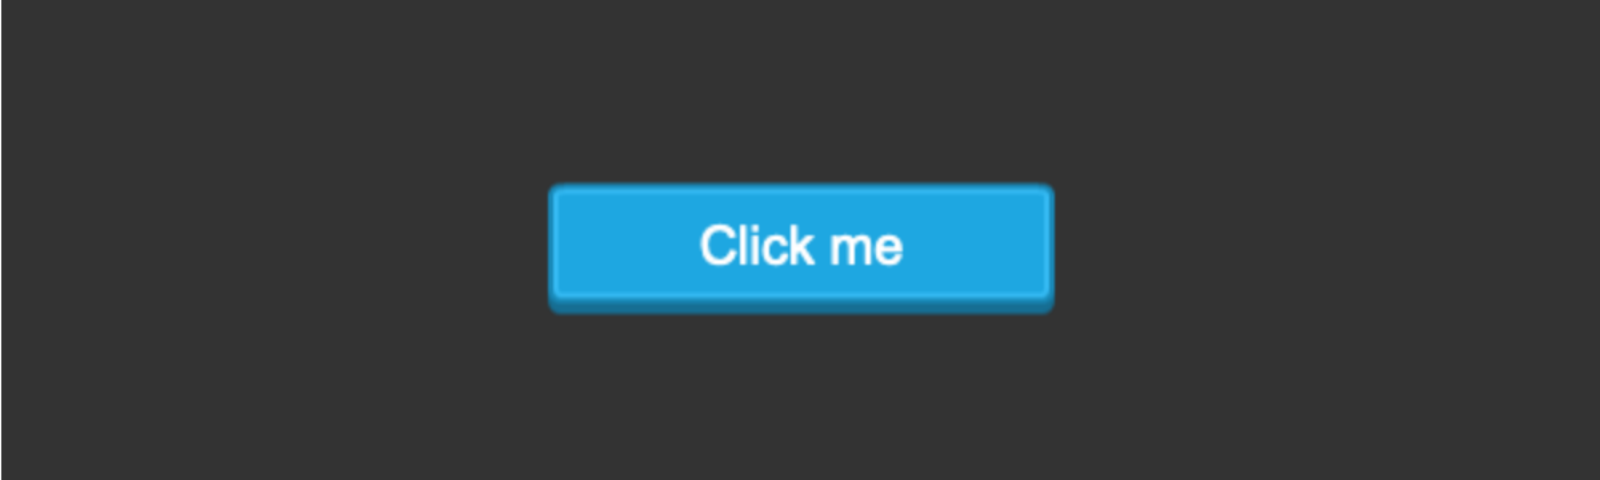 "A blue button with the text ""Click me"""